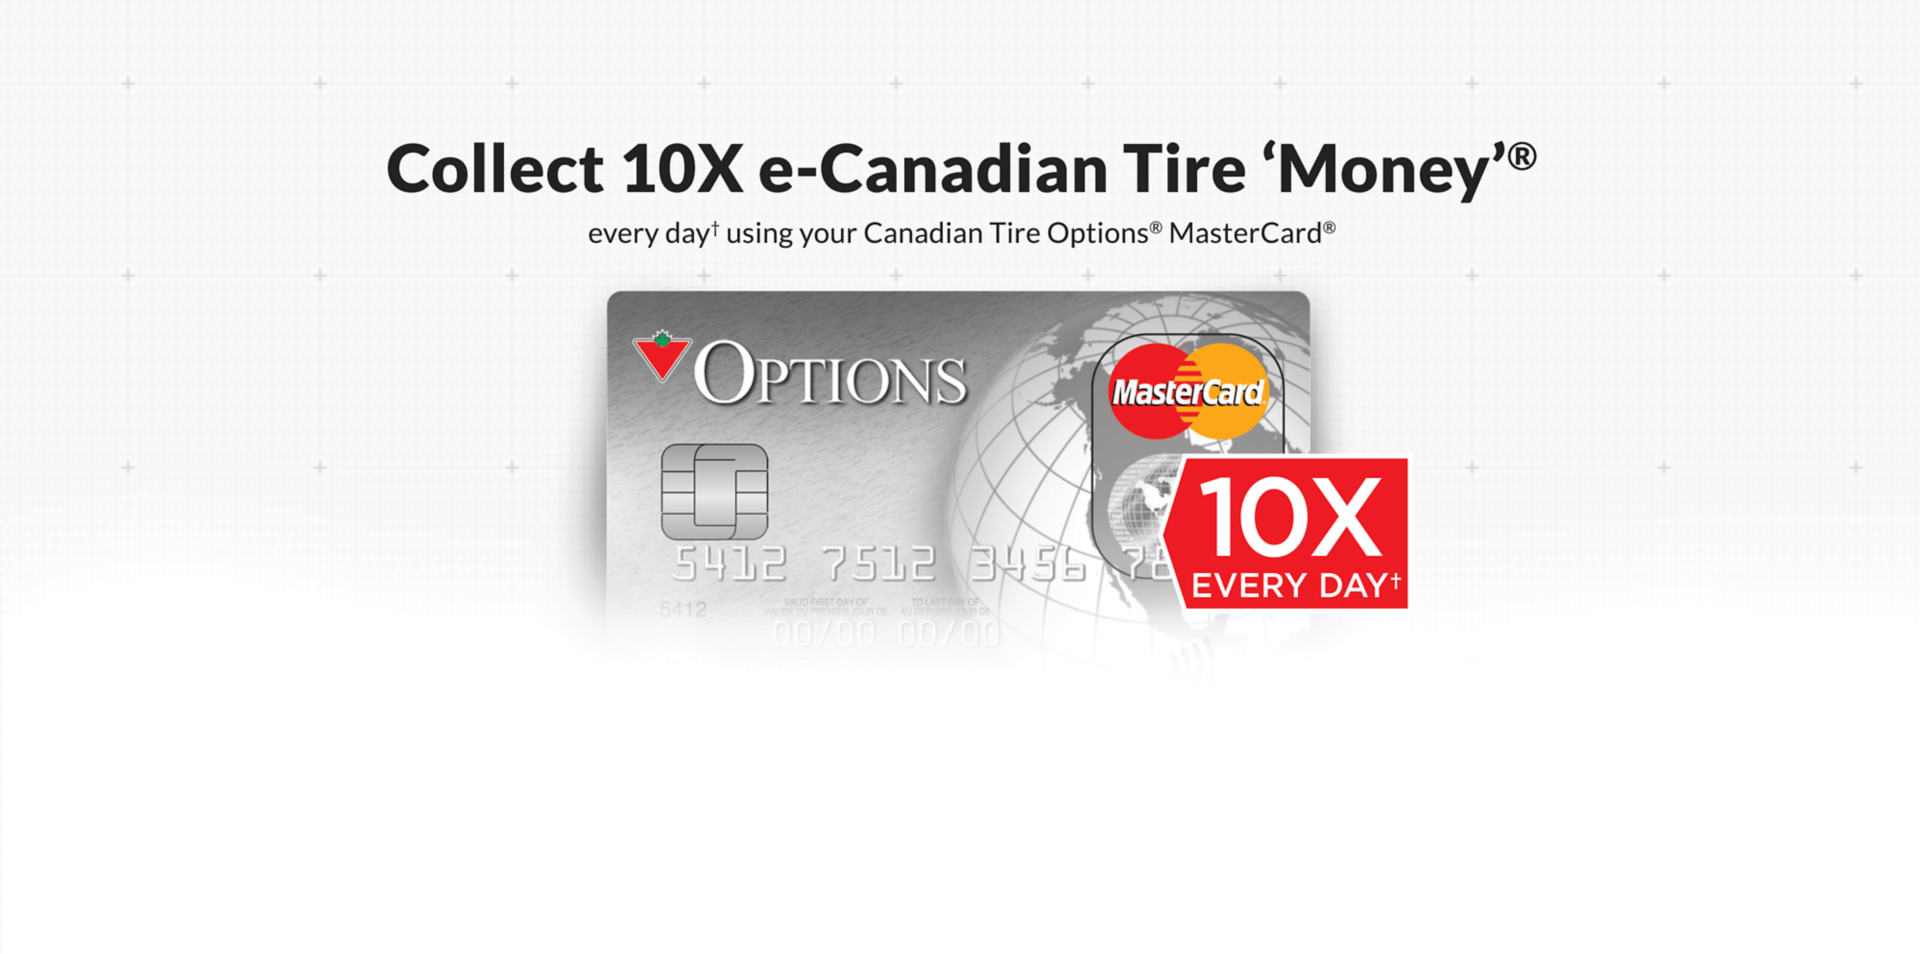 Canadian tire mastercard options online account